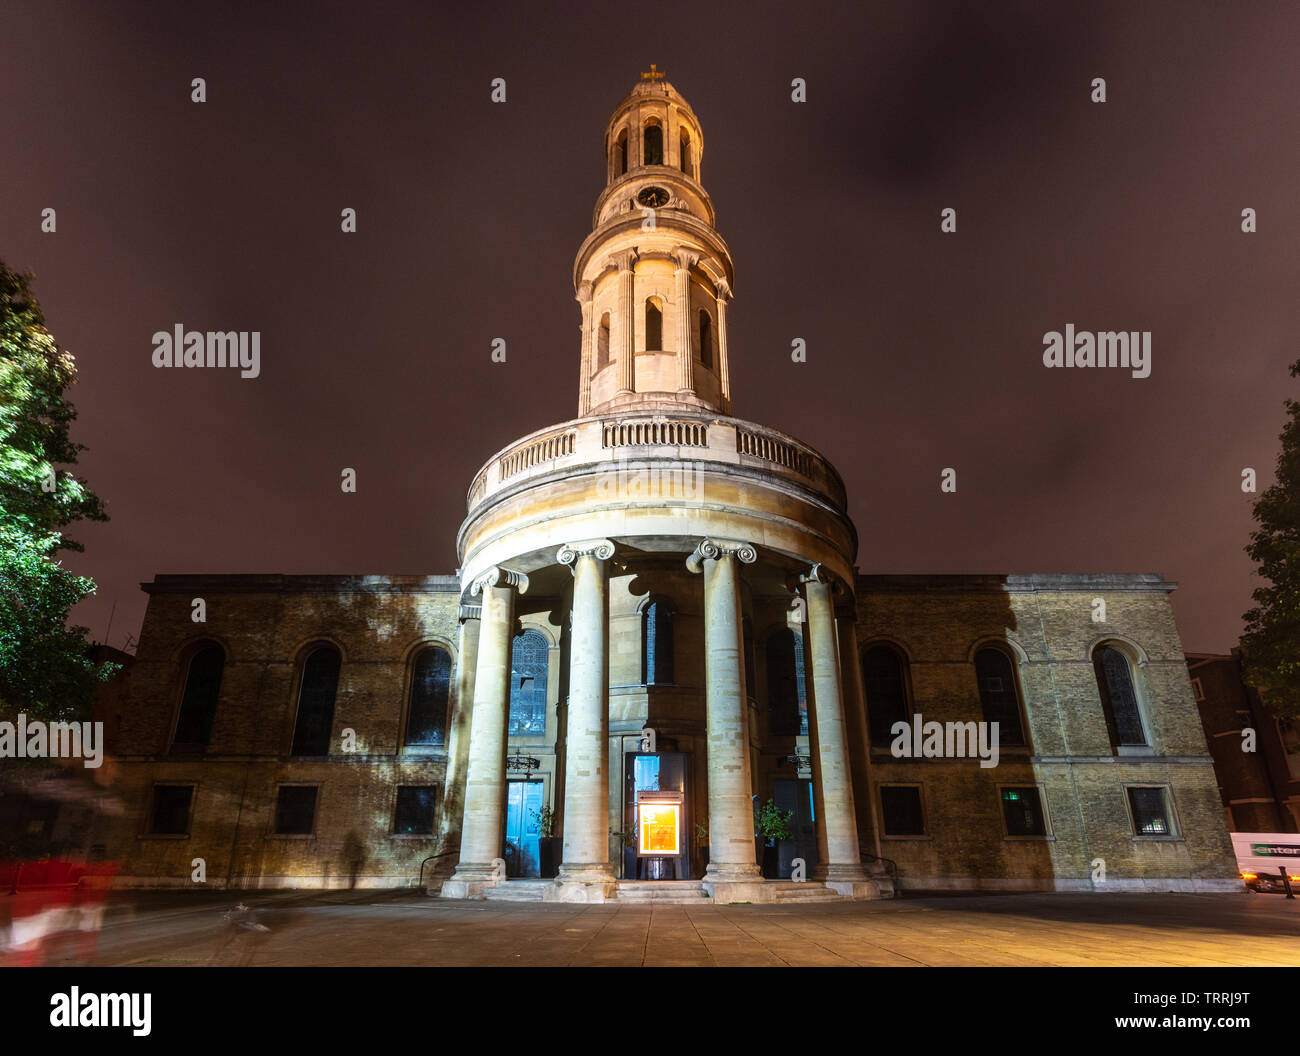 London, England, UK - October 12, 2018: The tower and south face of St Mary's Church is lit at night in Bryanston Square in the Marylebone neighbourho - Stock Image